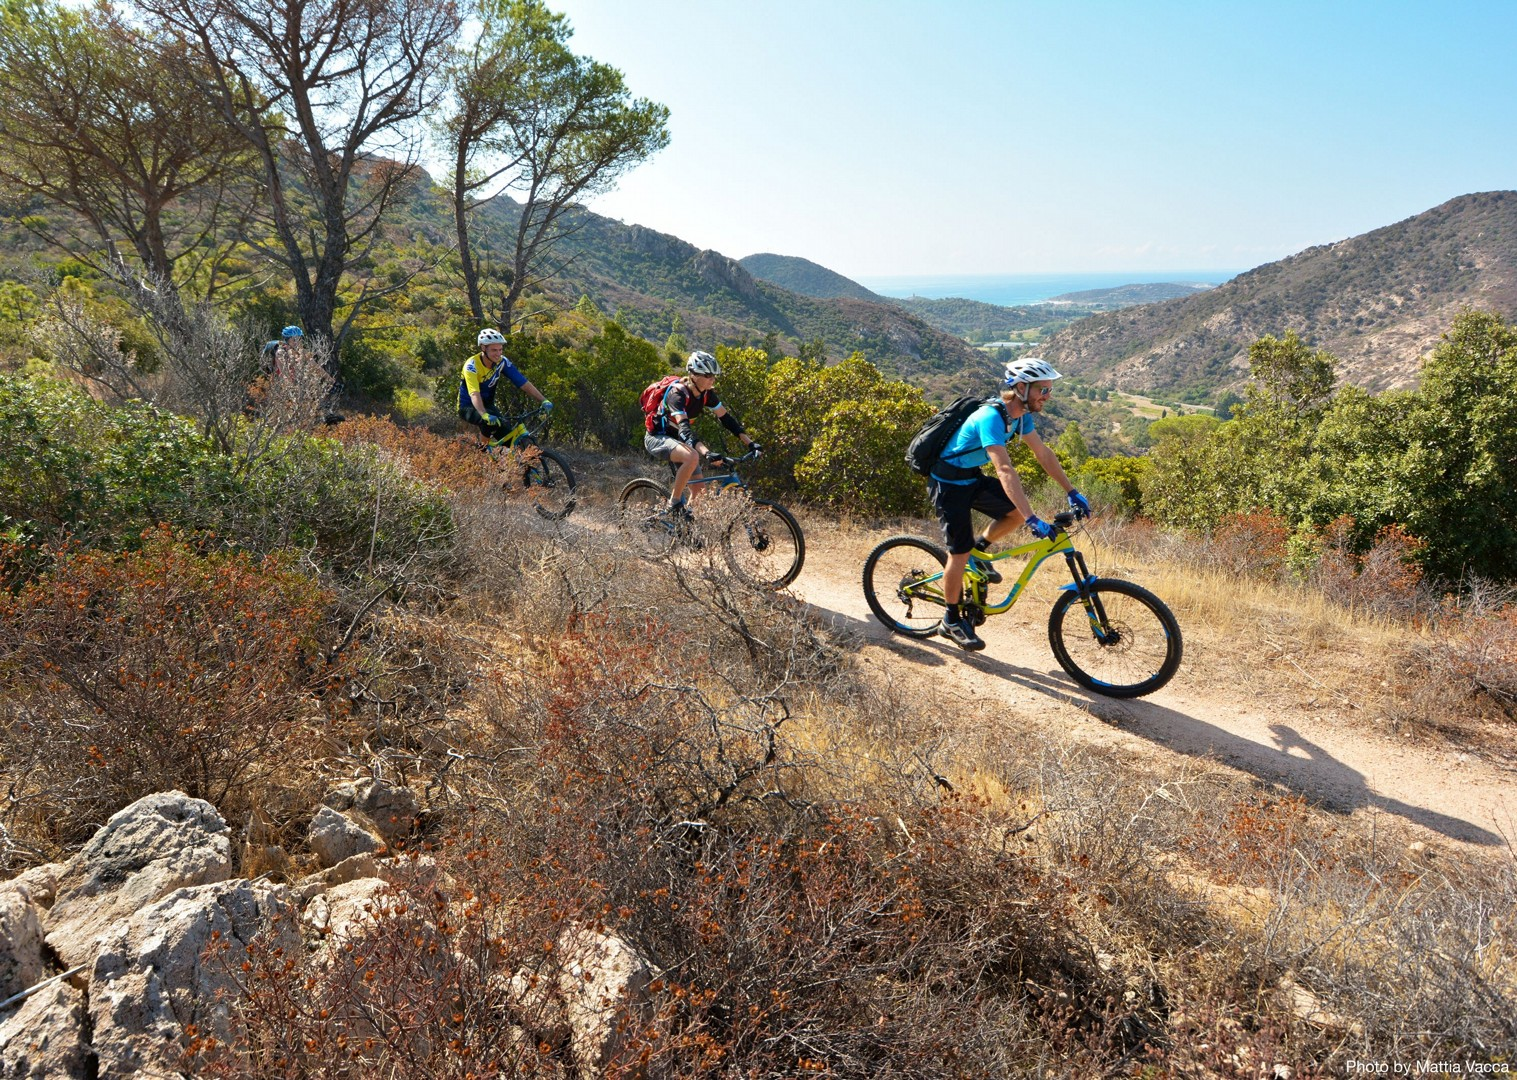 guided-mountain-bike-holiday-italy-sardinia-sardinian-enduro.jpg - Sardinia - Sardinian Enduro - Guided Mountain Bike Holiday - Mountain Biking